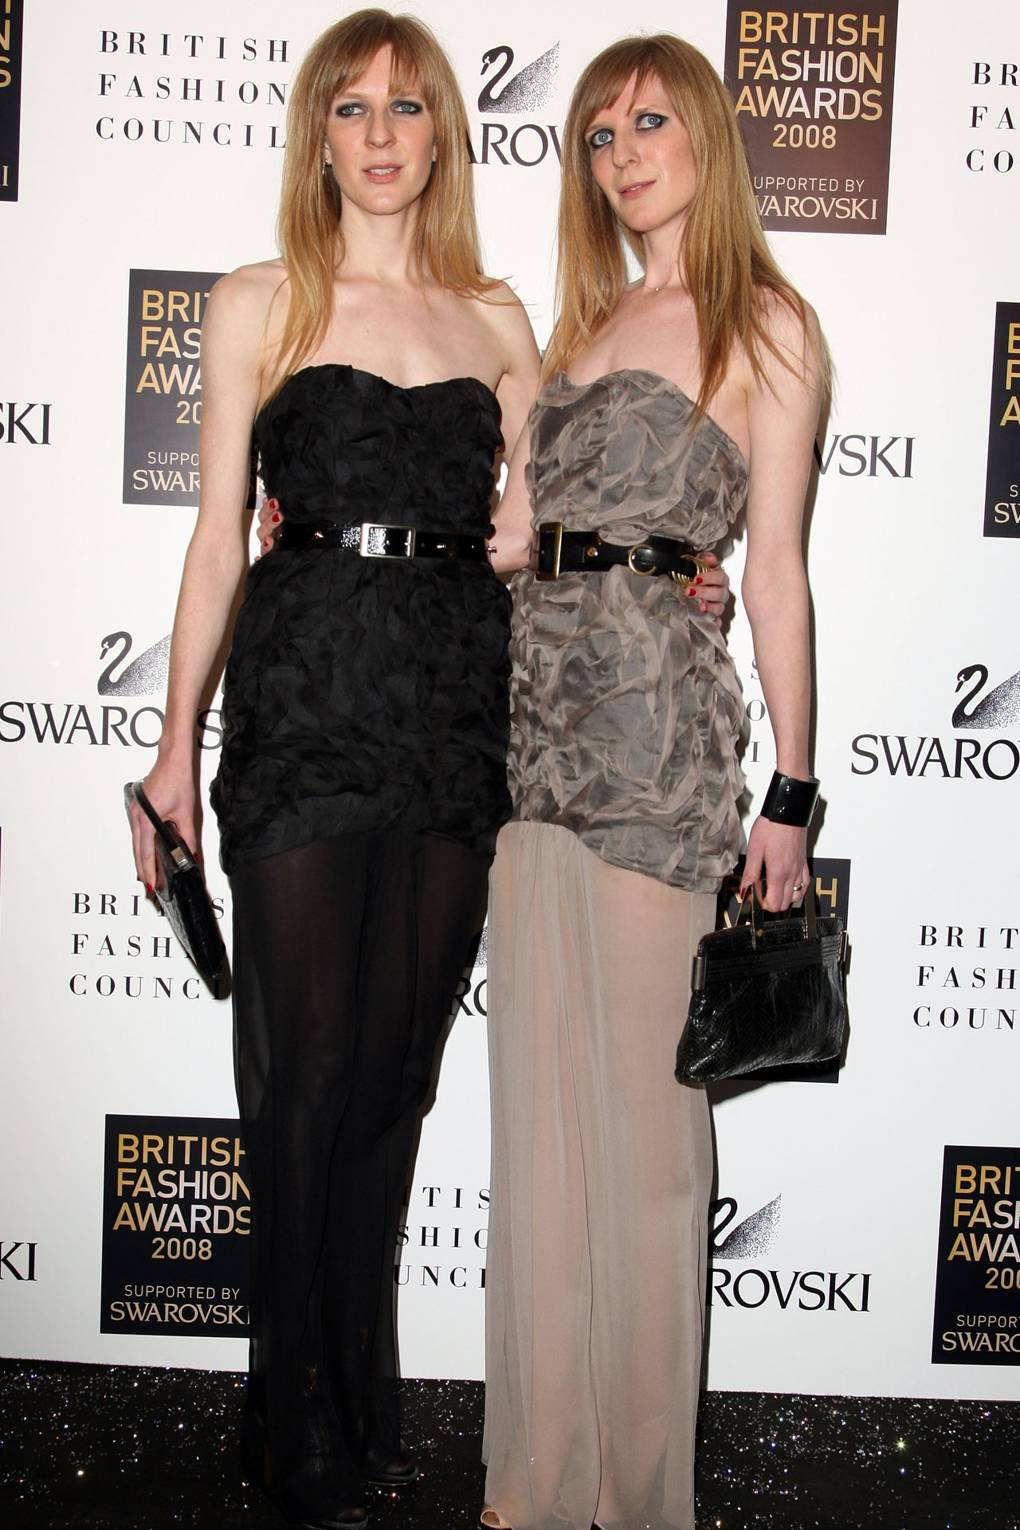 British Fashion Awards 2008 Luella Matthew Willaimson Alexa Chung Bri Fash Black Jourdan Dunn Vogue